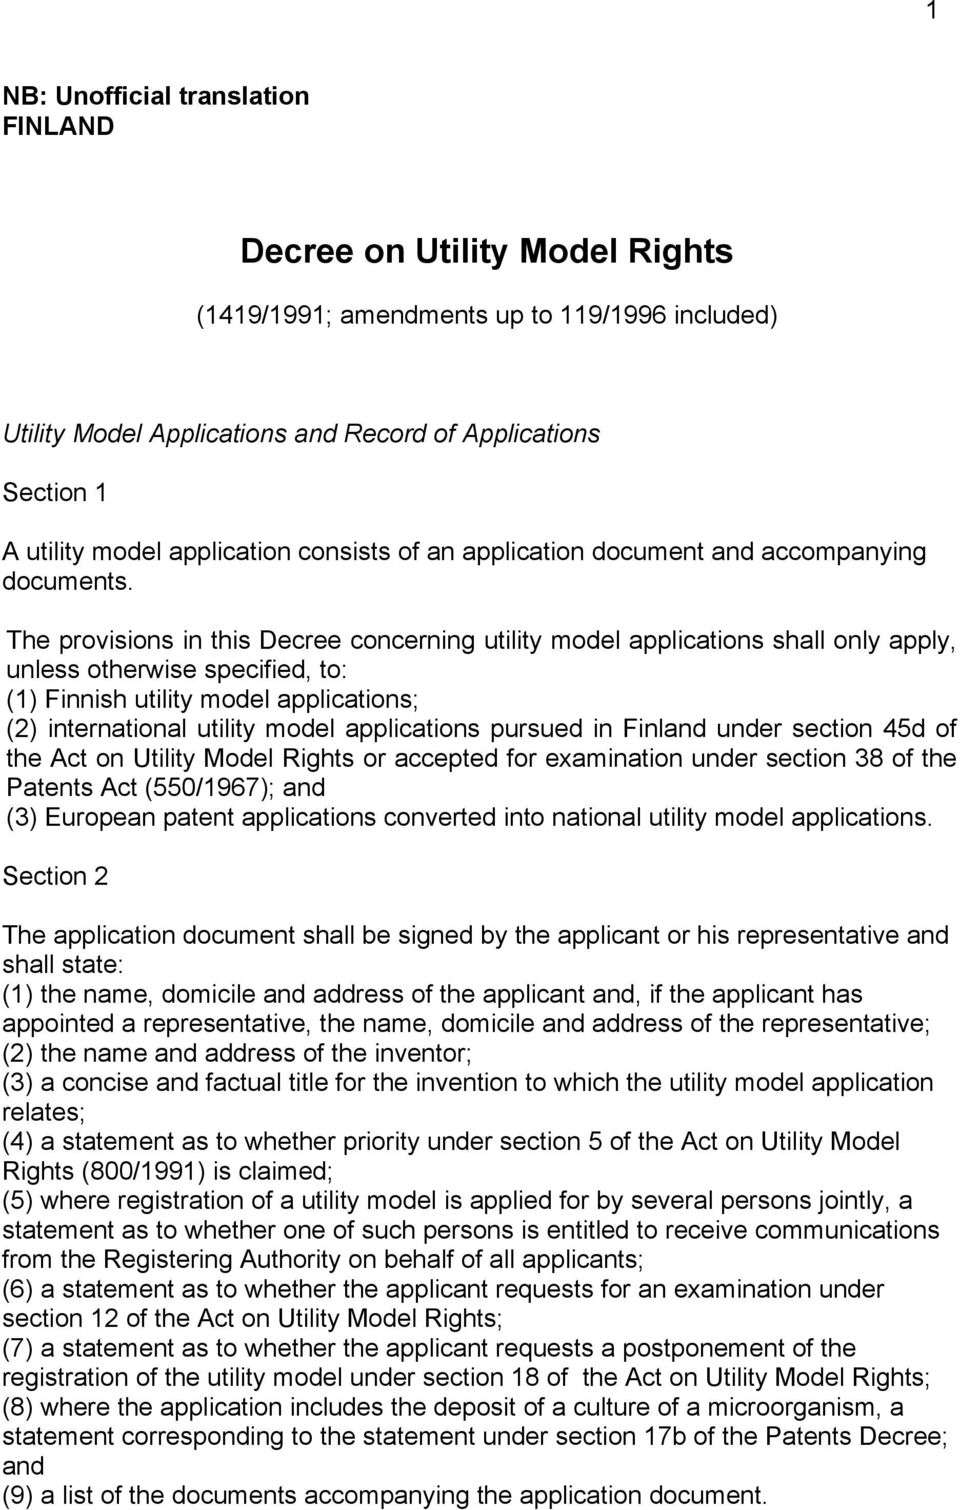 The provisions in this Decree concerning utility model applications shall only apply, unless otherwise specified, to: (1) Finnish utility model applications; (2) international utility model